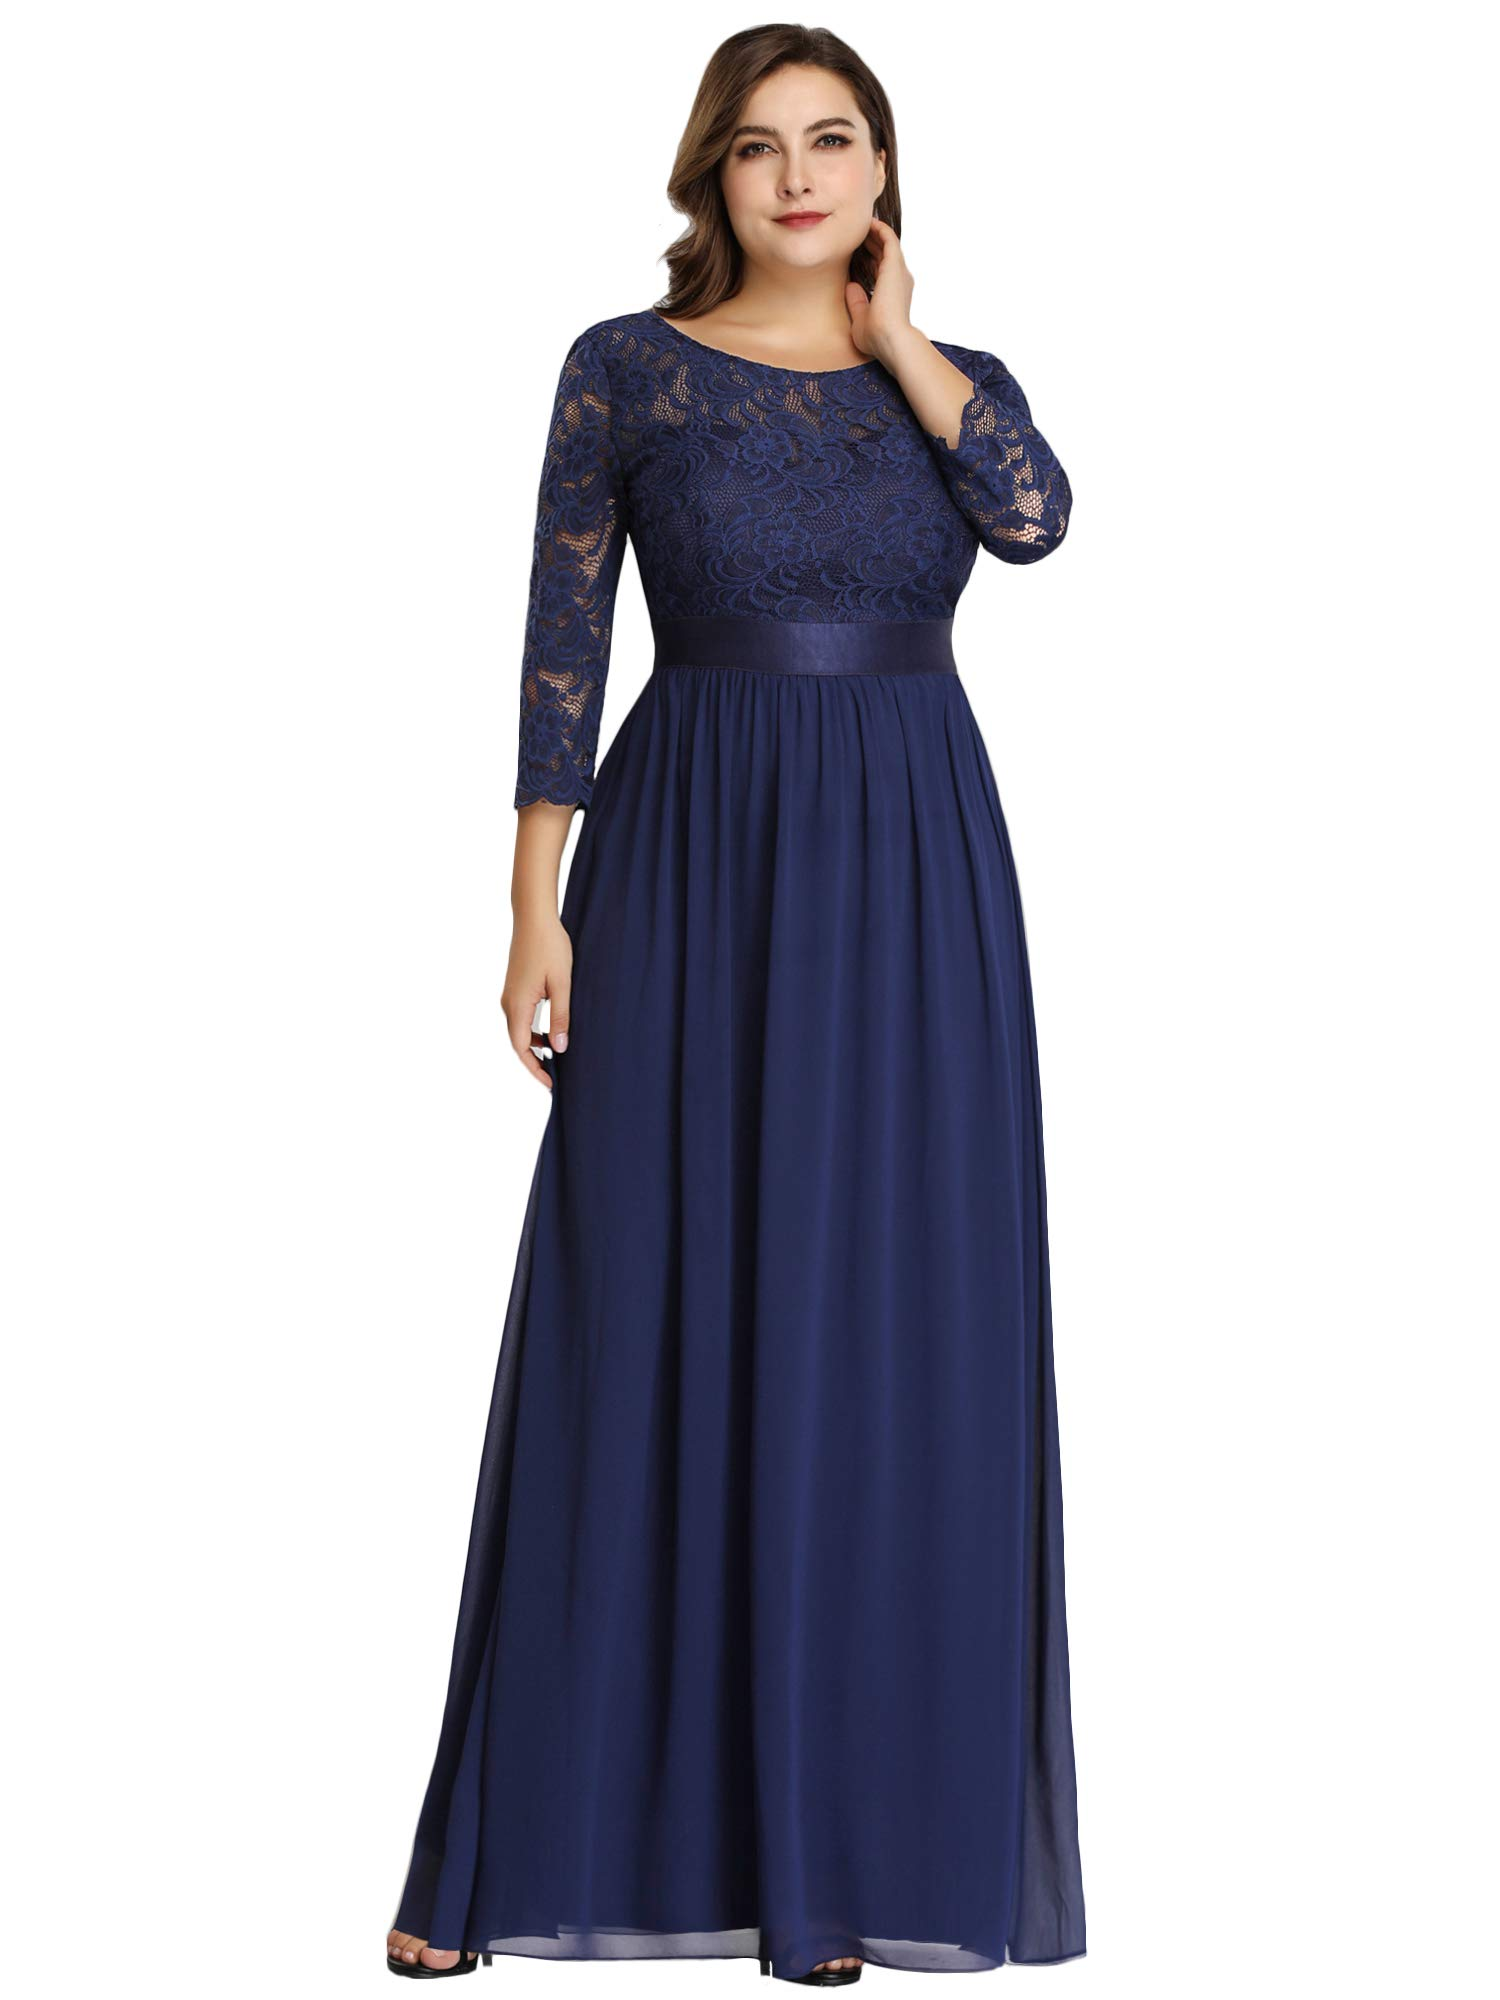 Mother Of The Bride Dresses - Women's Plus Size A-Line 3/4 Lace Sleeves Chiffon Long Formal Evening Party Maxi Dress 7412pz